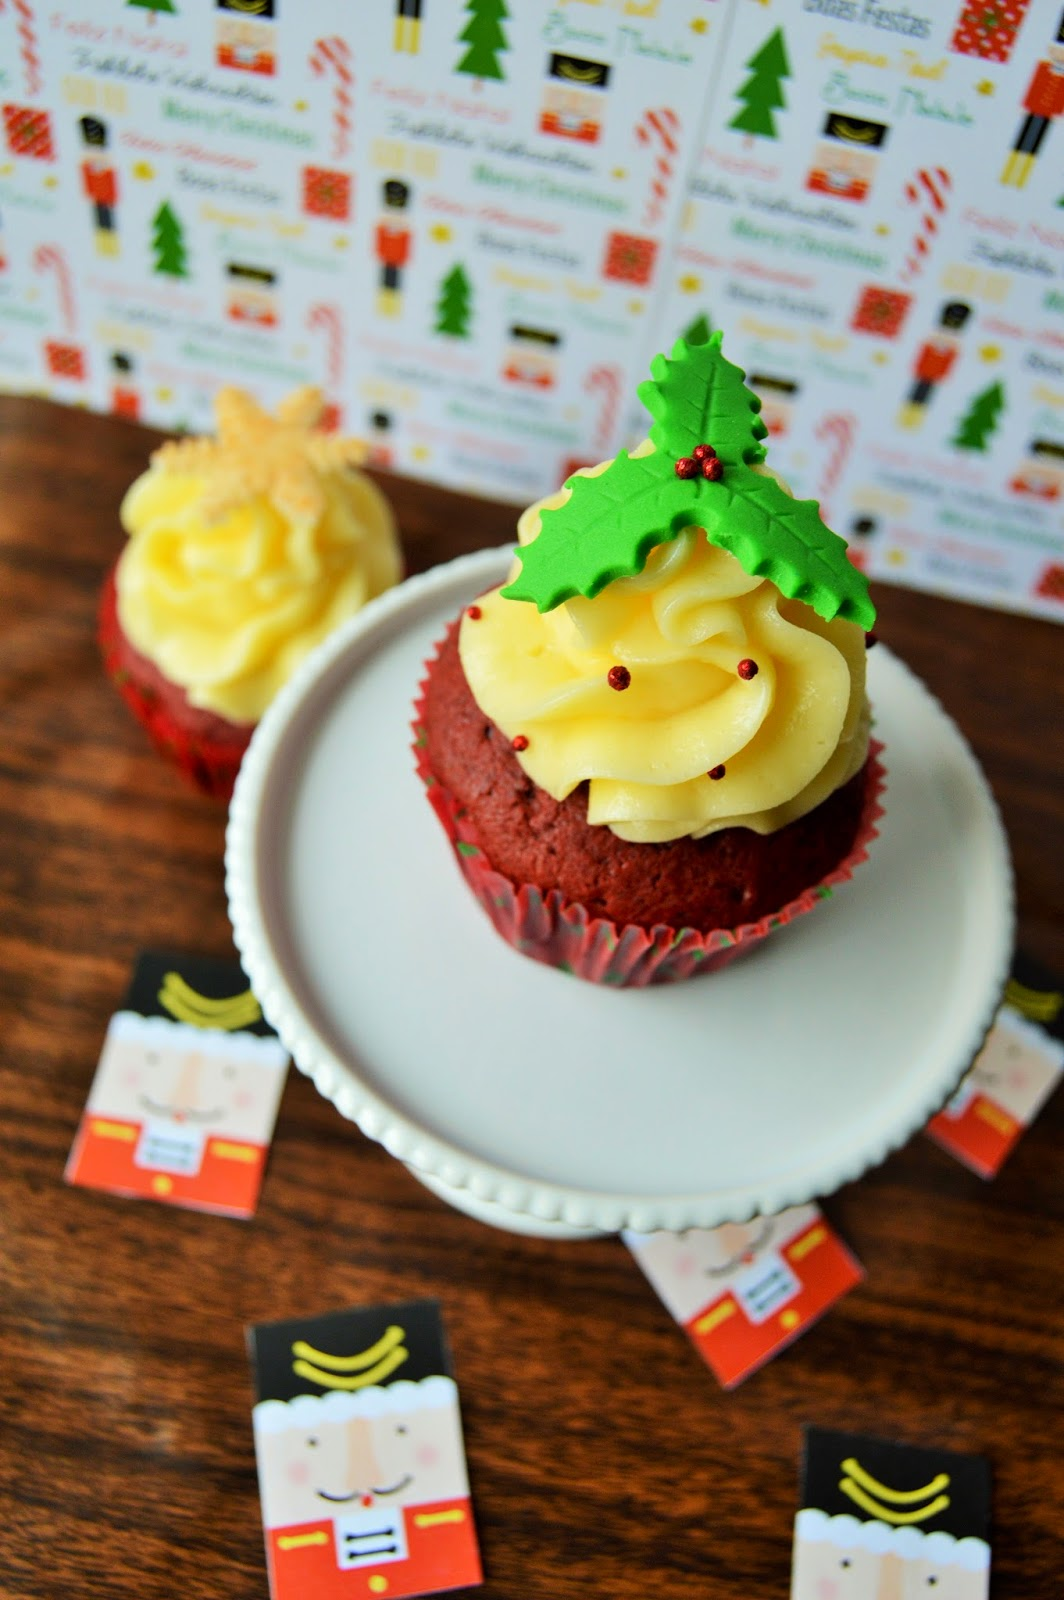 red-velvet-cupcakes-navidad-mexico-queso-cream-cheese-frosting